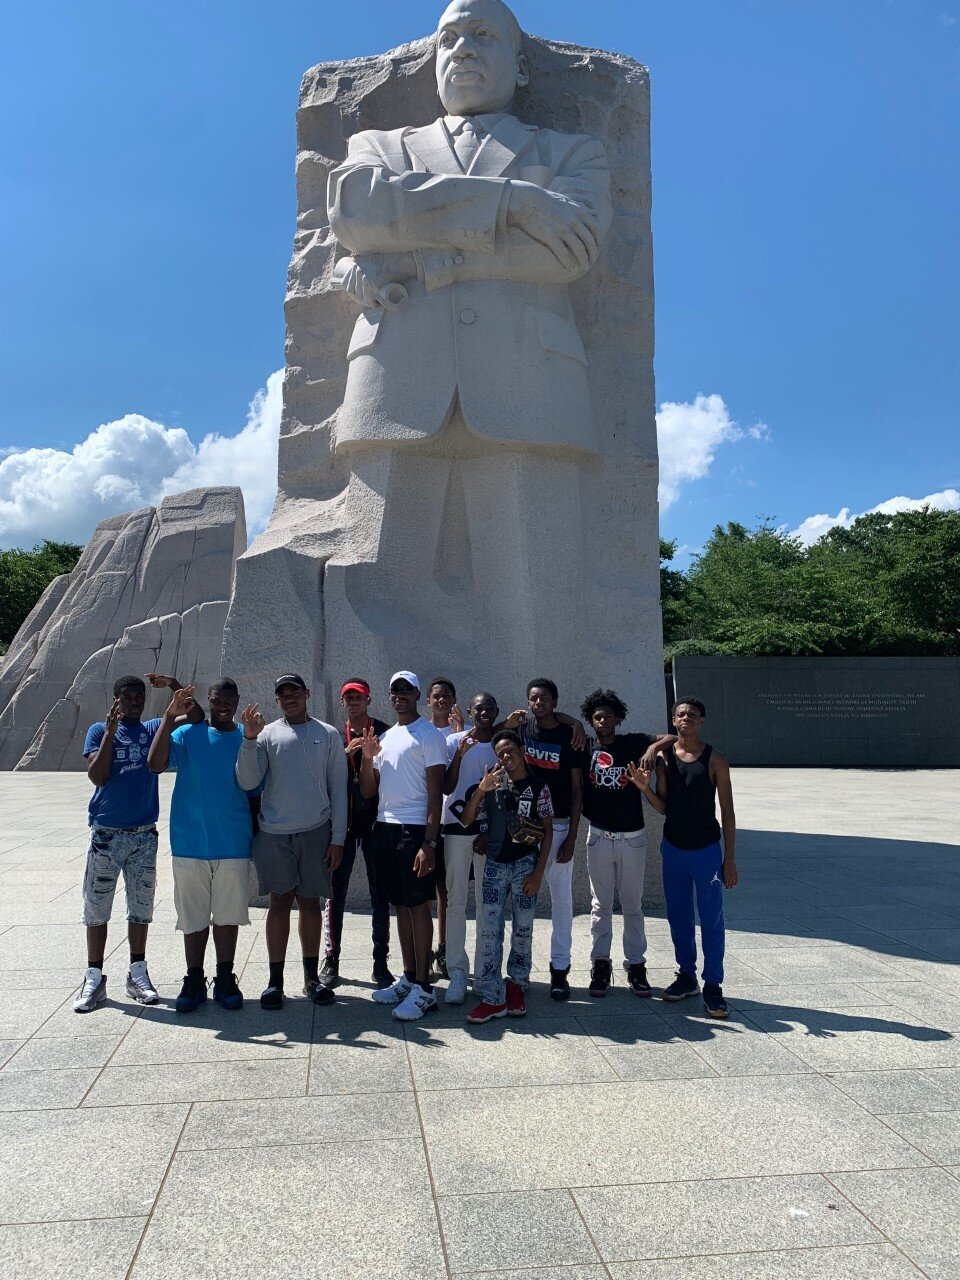 - Officer Keys and the boys at the MLK monument in Washington DC